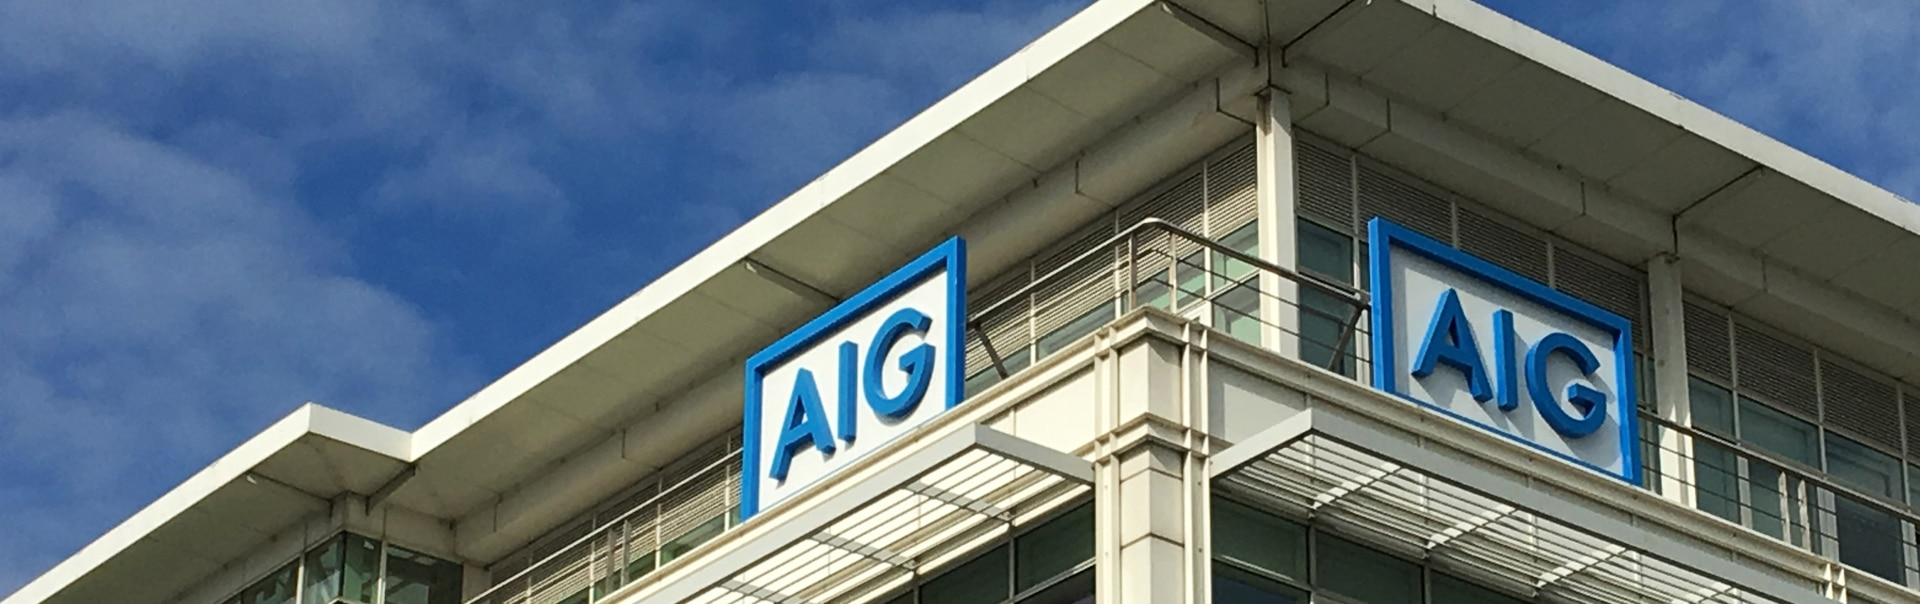 AIG Face Lit Illuminated Letters